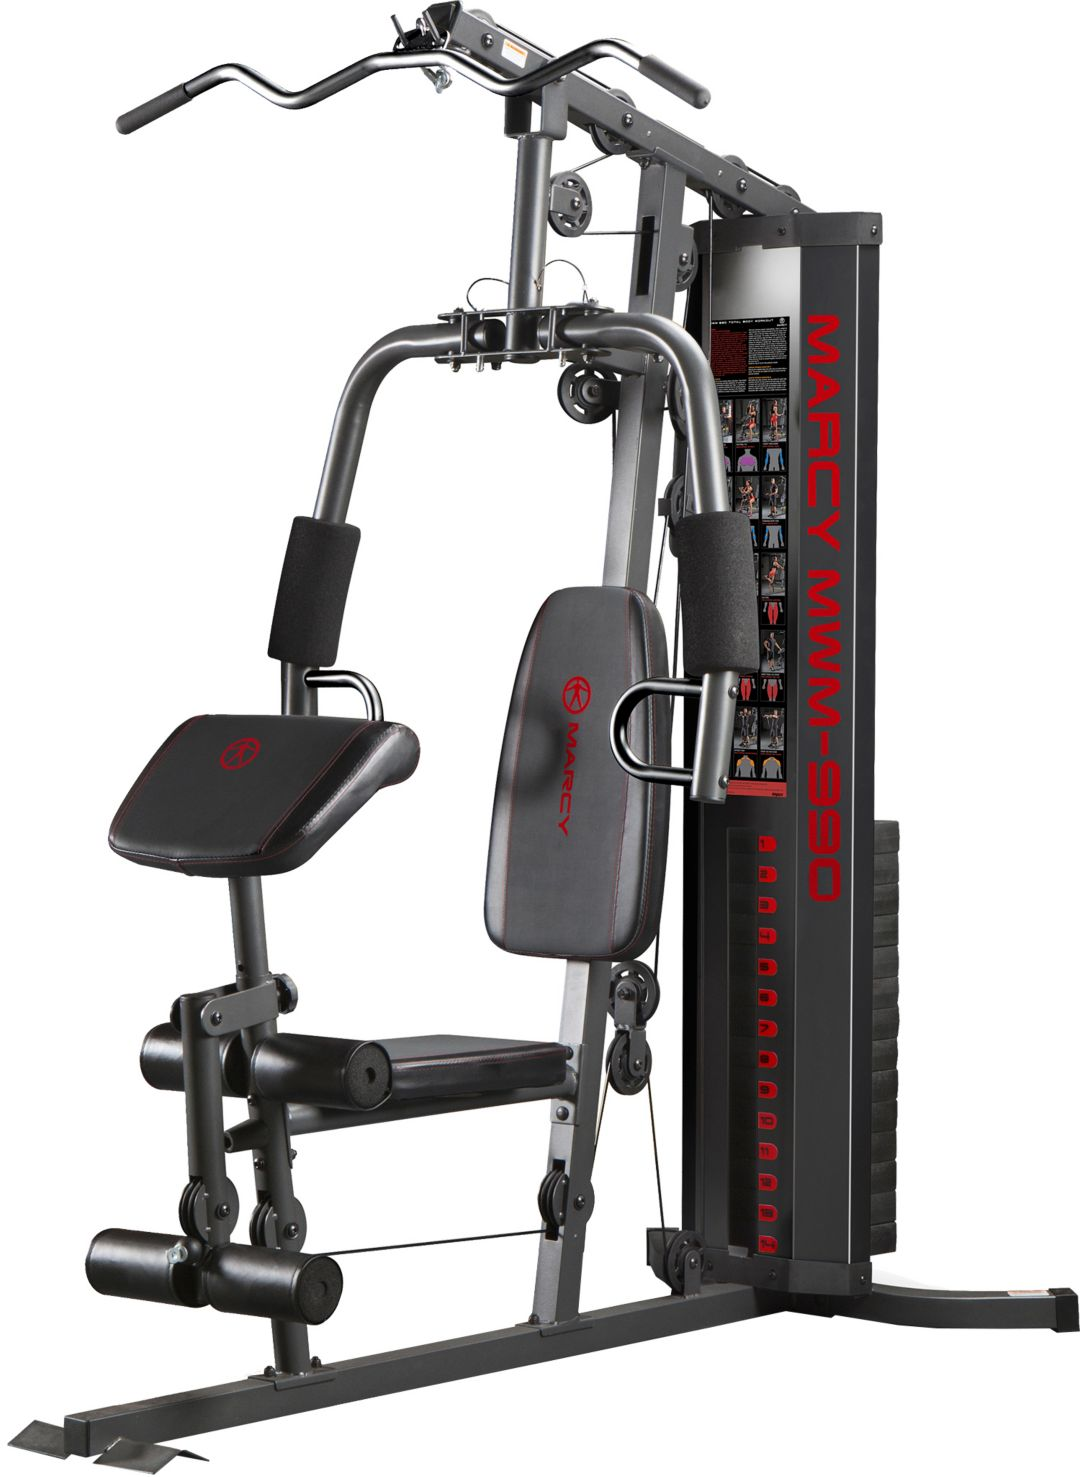 8972b5d7fc5c0 Marcy 150lb Stack Home Gym | DICK'S Sporting Goods